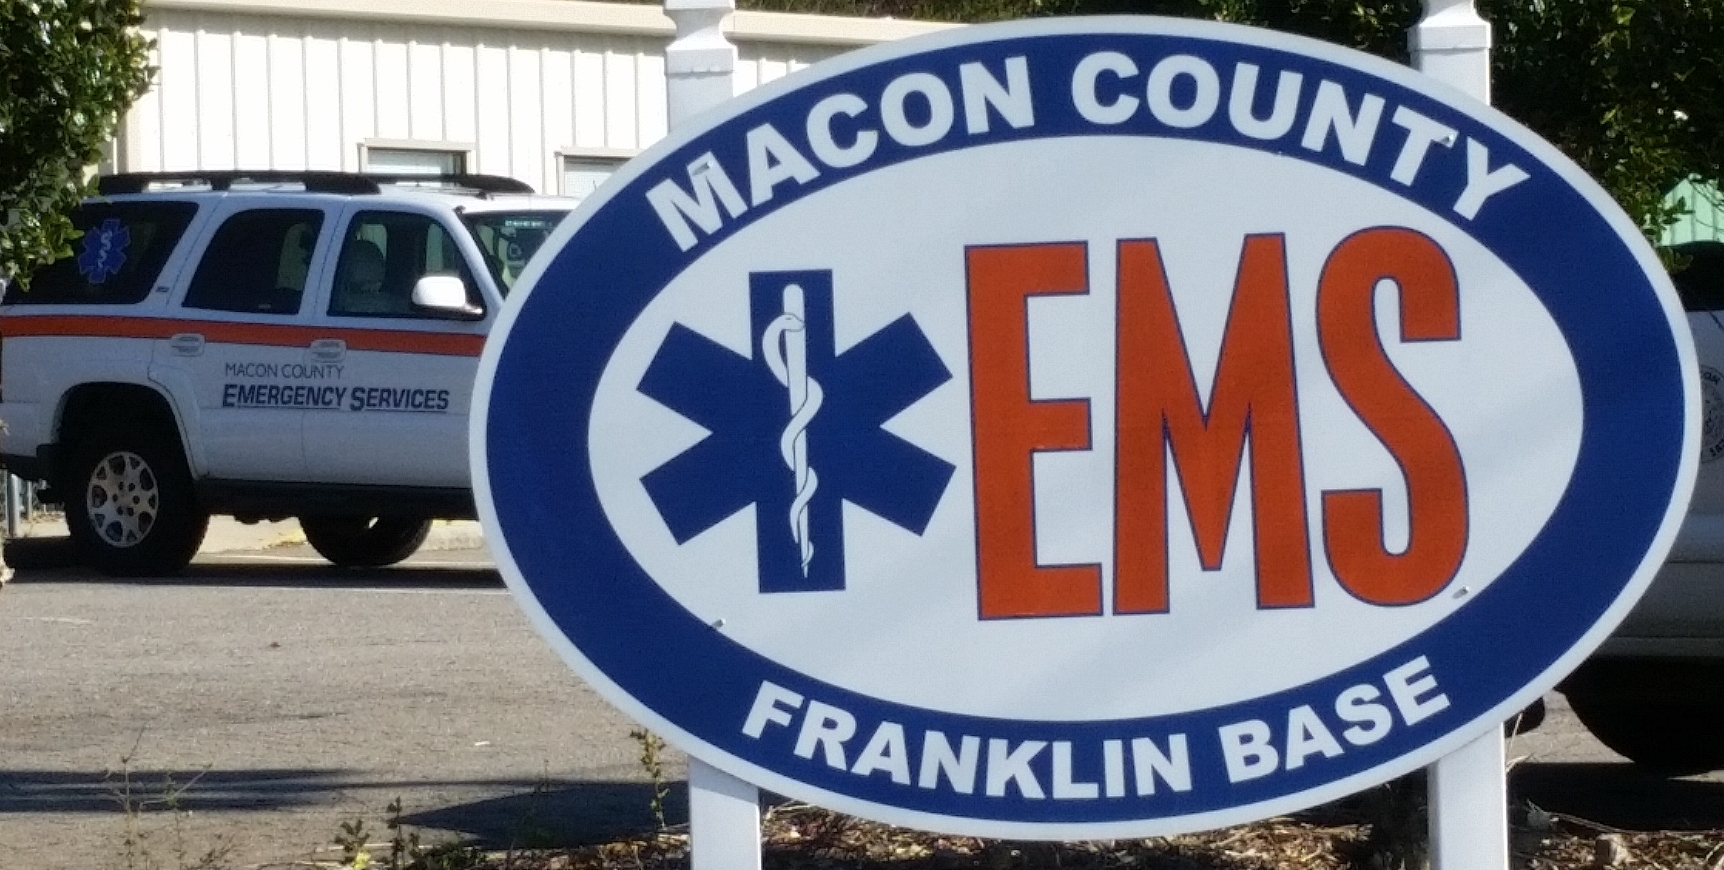 emergency medical services ems macon county nc north carolina